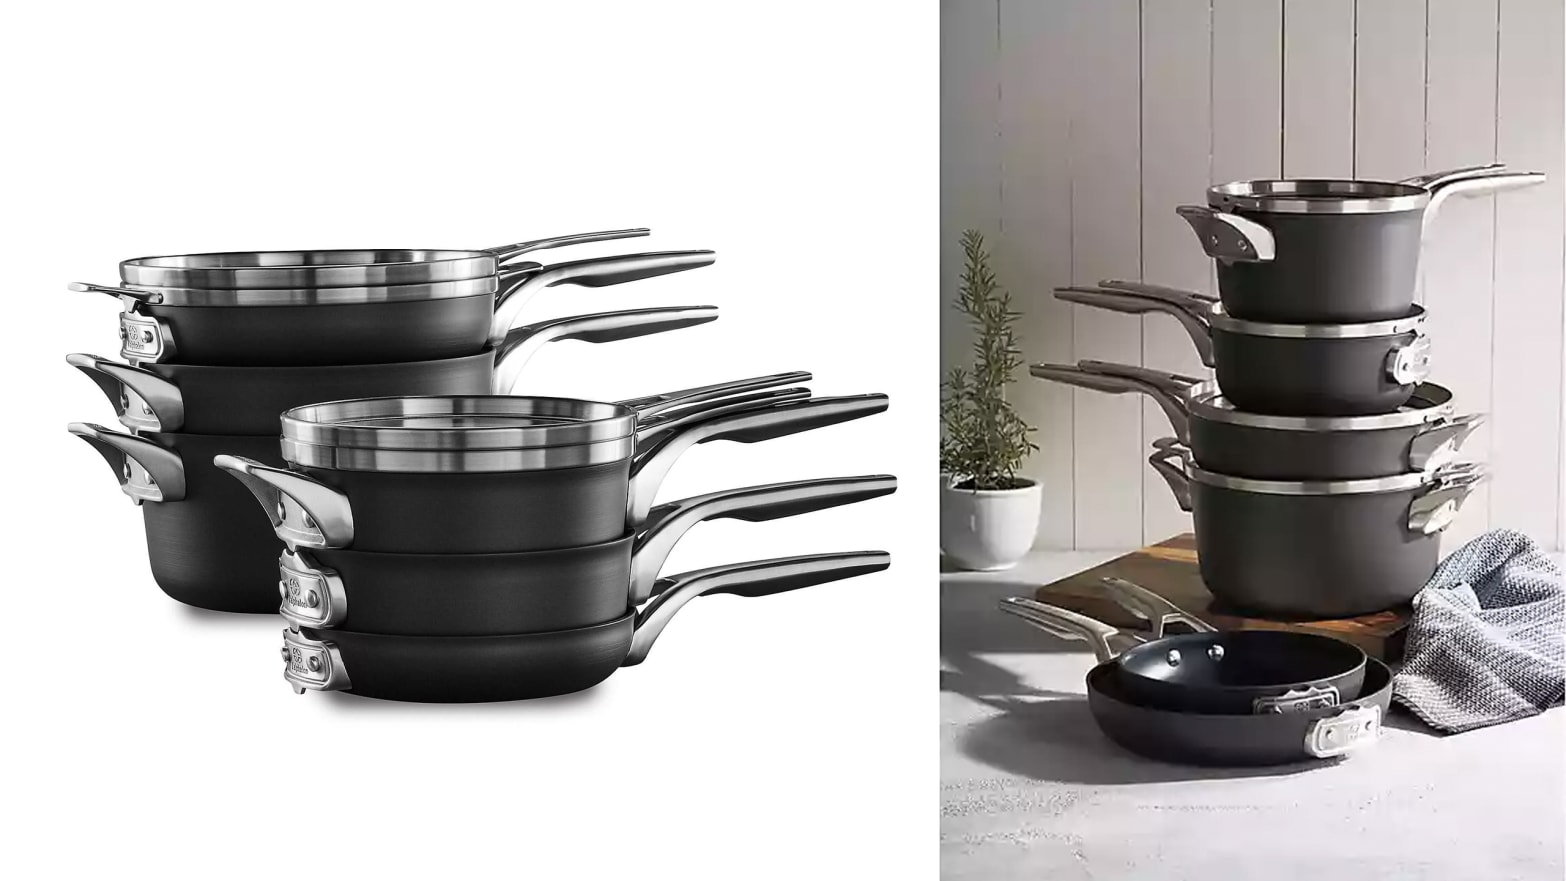 This Stacking Cookware Set From Calphalon Are The Best Pots And